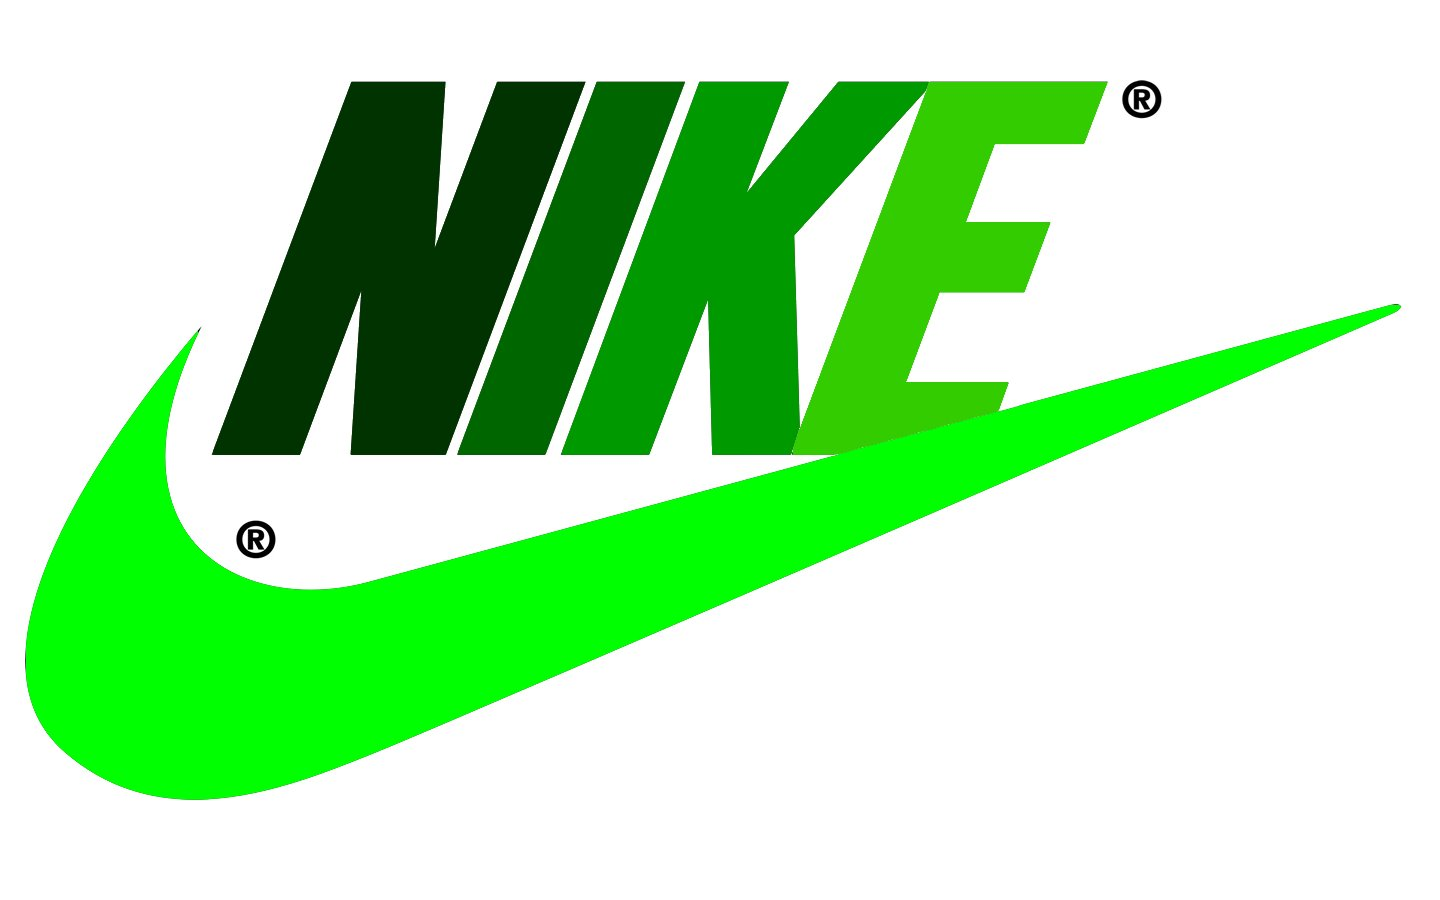 Green lime nike logo wallpaper recommend to wear for everyday in 2019